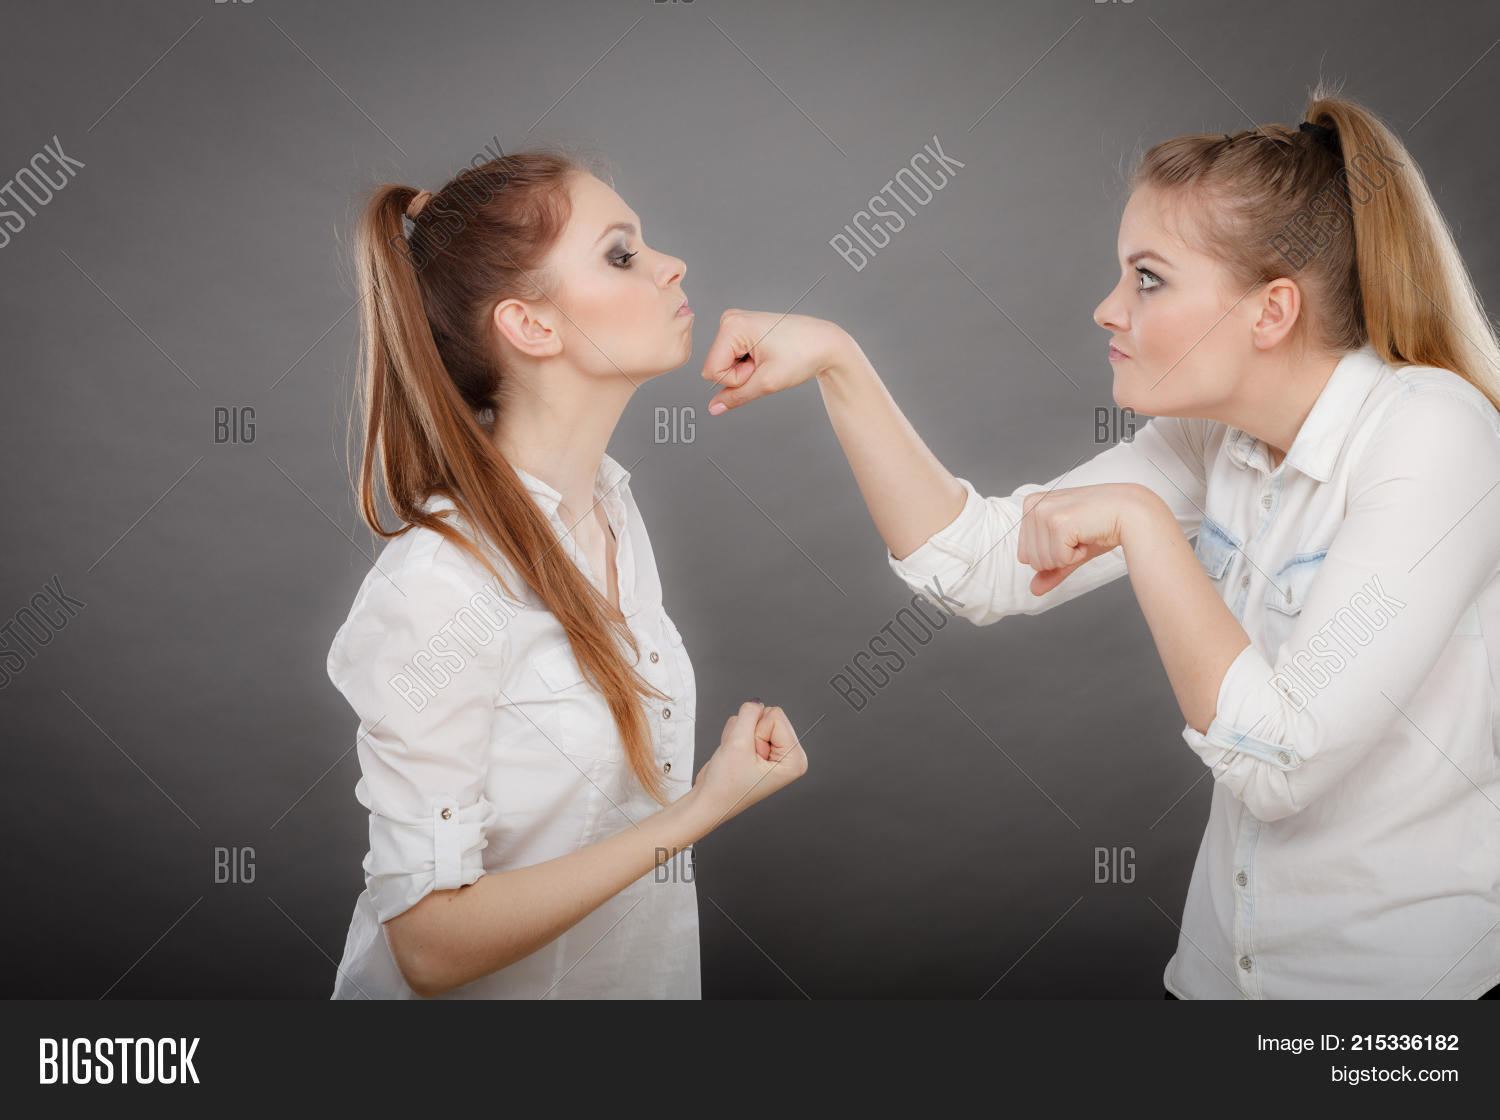 Two women playing with each other